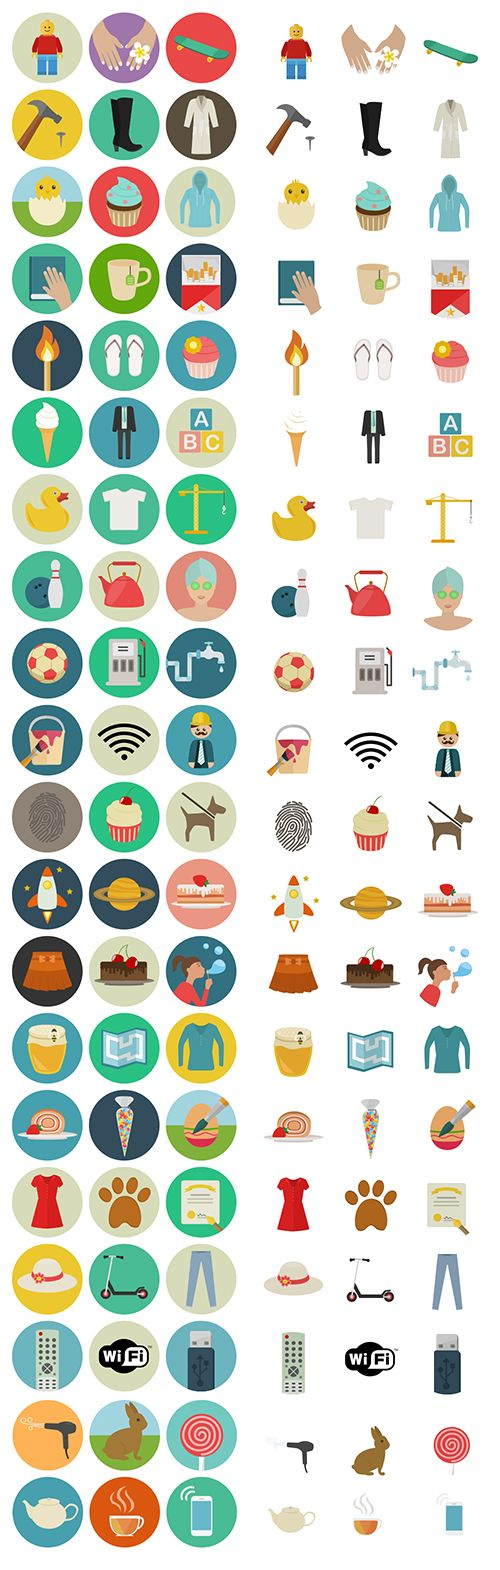 Freebie: Flat Icon Set (60 Icons, PNG, SVG, EPS, PSD, AI) | Smashing Magazine